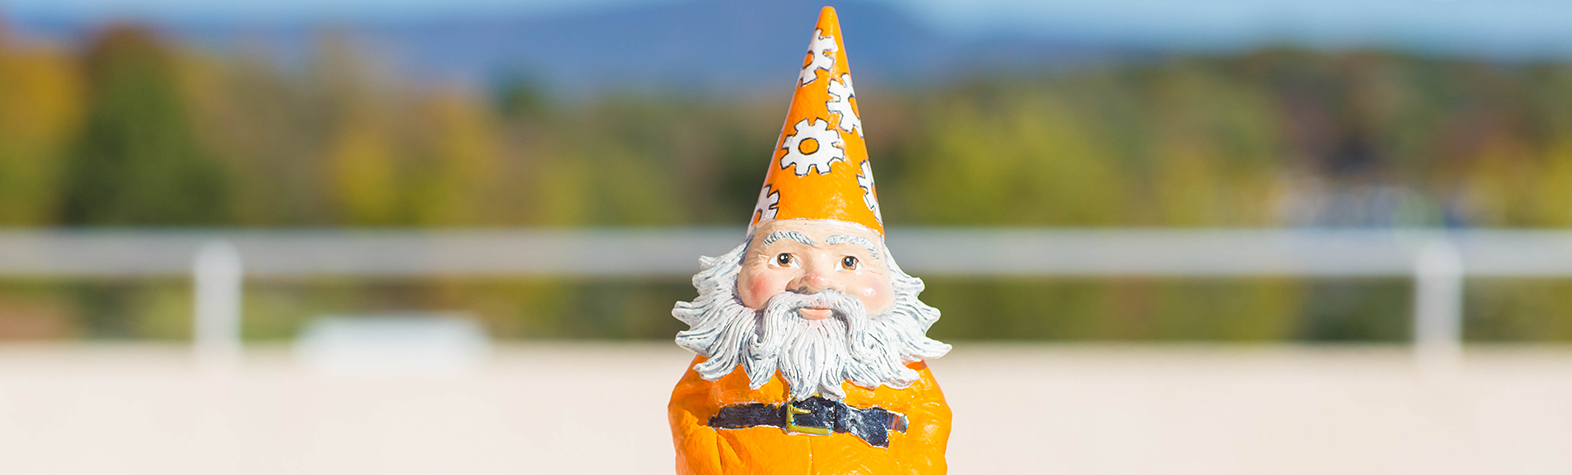 TAD Gnome with scenic overlook background.